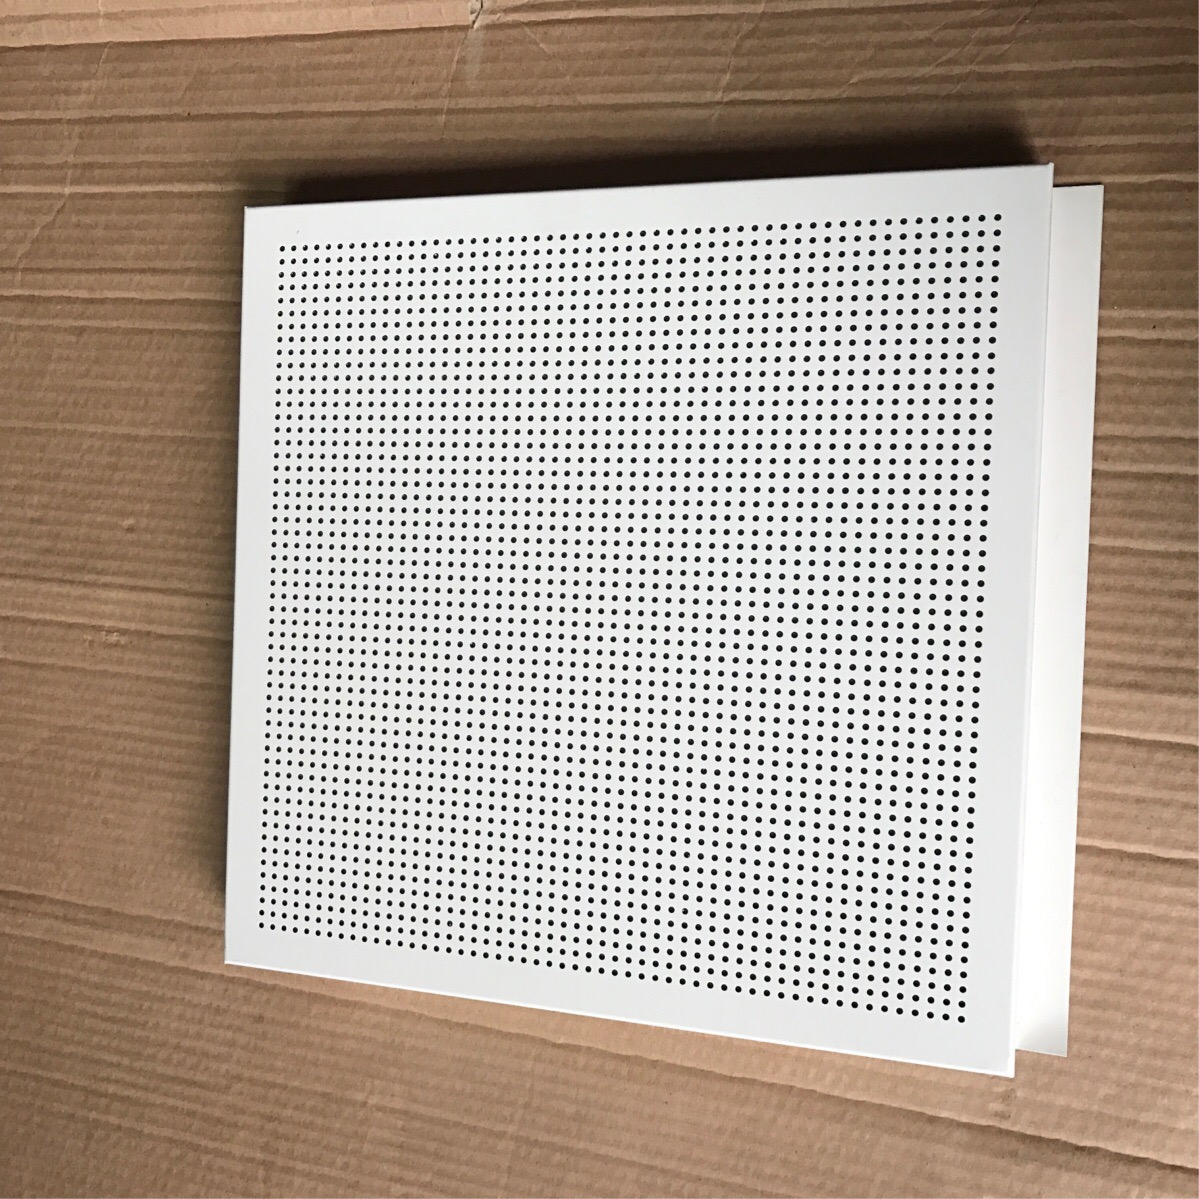 Interior Metal Wall Panels Insulated Metal Panels Perforated Metal Products Acoustic Panel Buy Interior Metal Wall Panels Insulated Metal Panels Perforated Metal Products Acoustic Panel Product On Alibaba Com